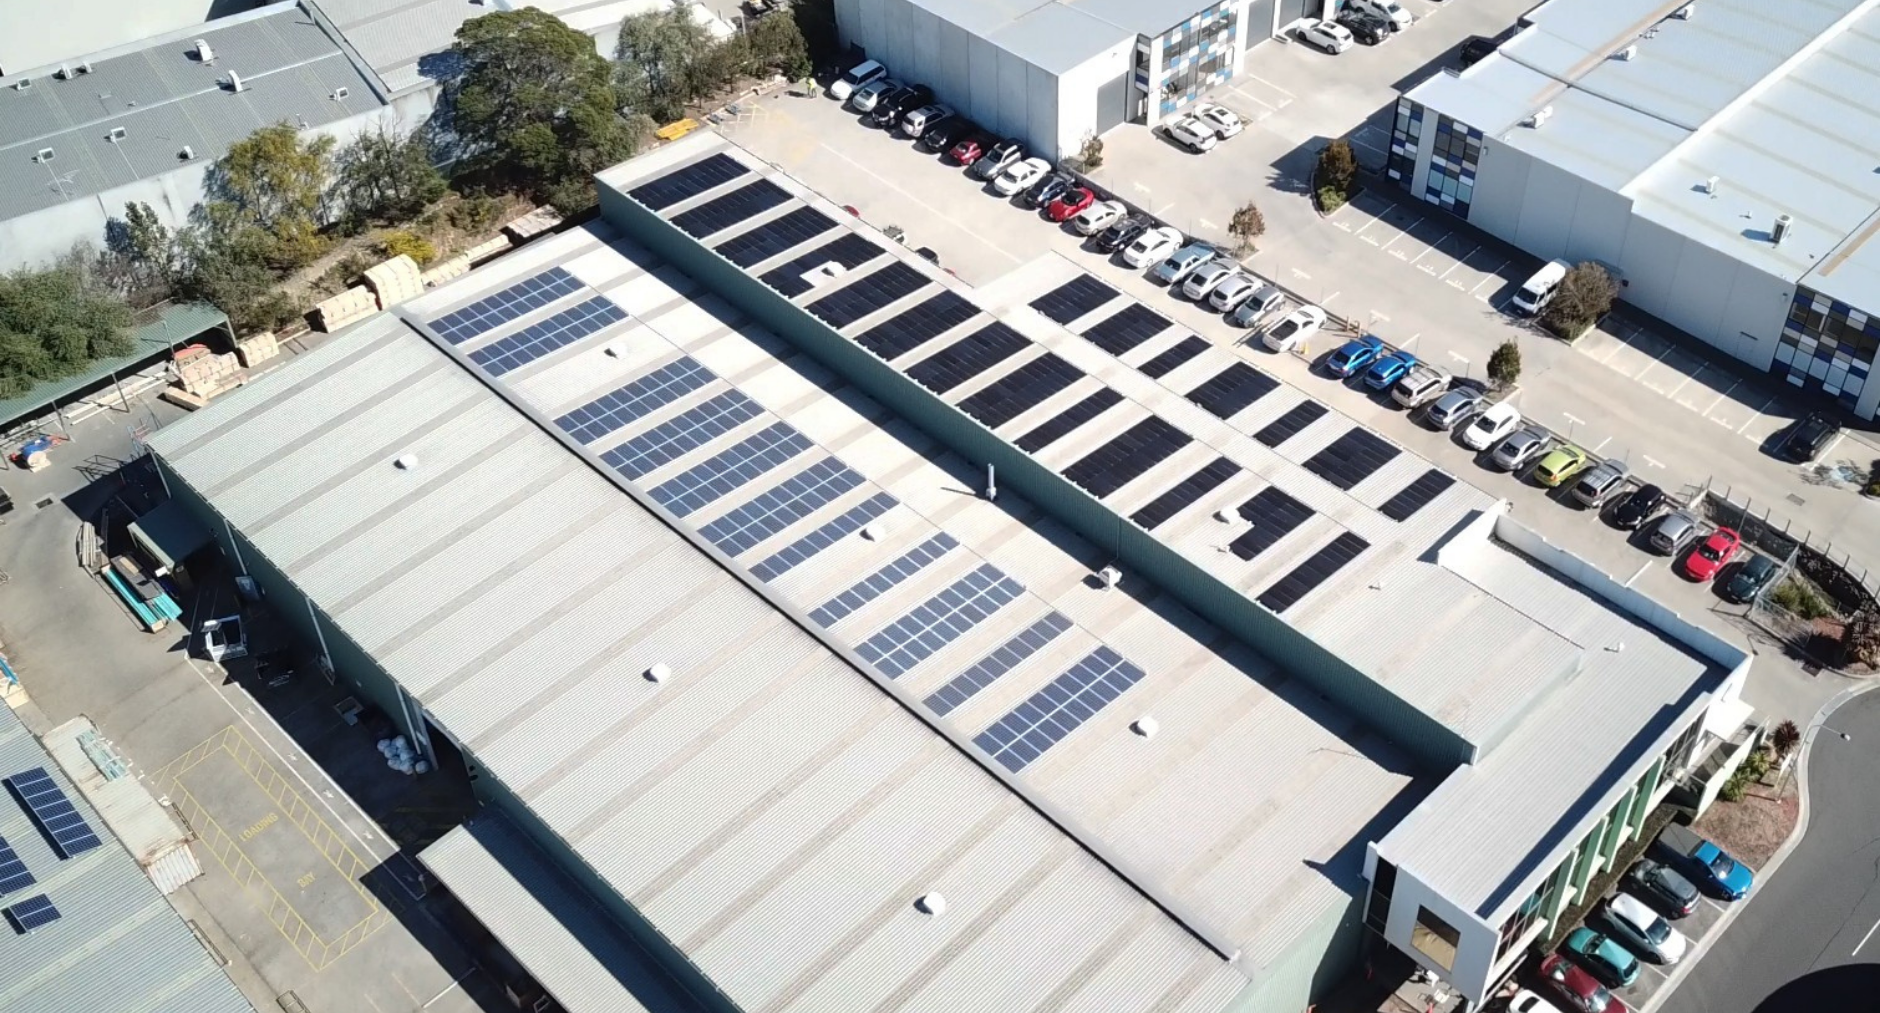 RFI installs 100kW system on largest manufacturing facility